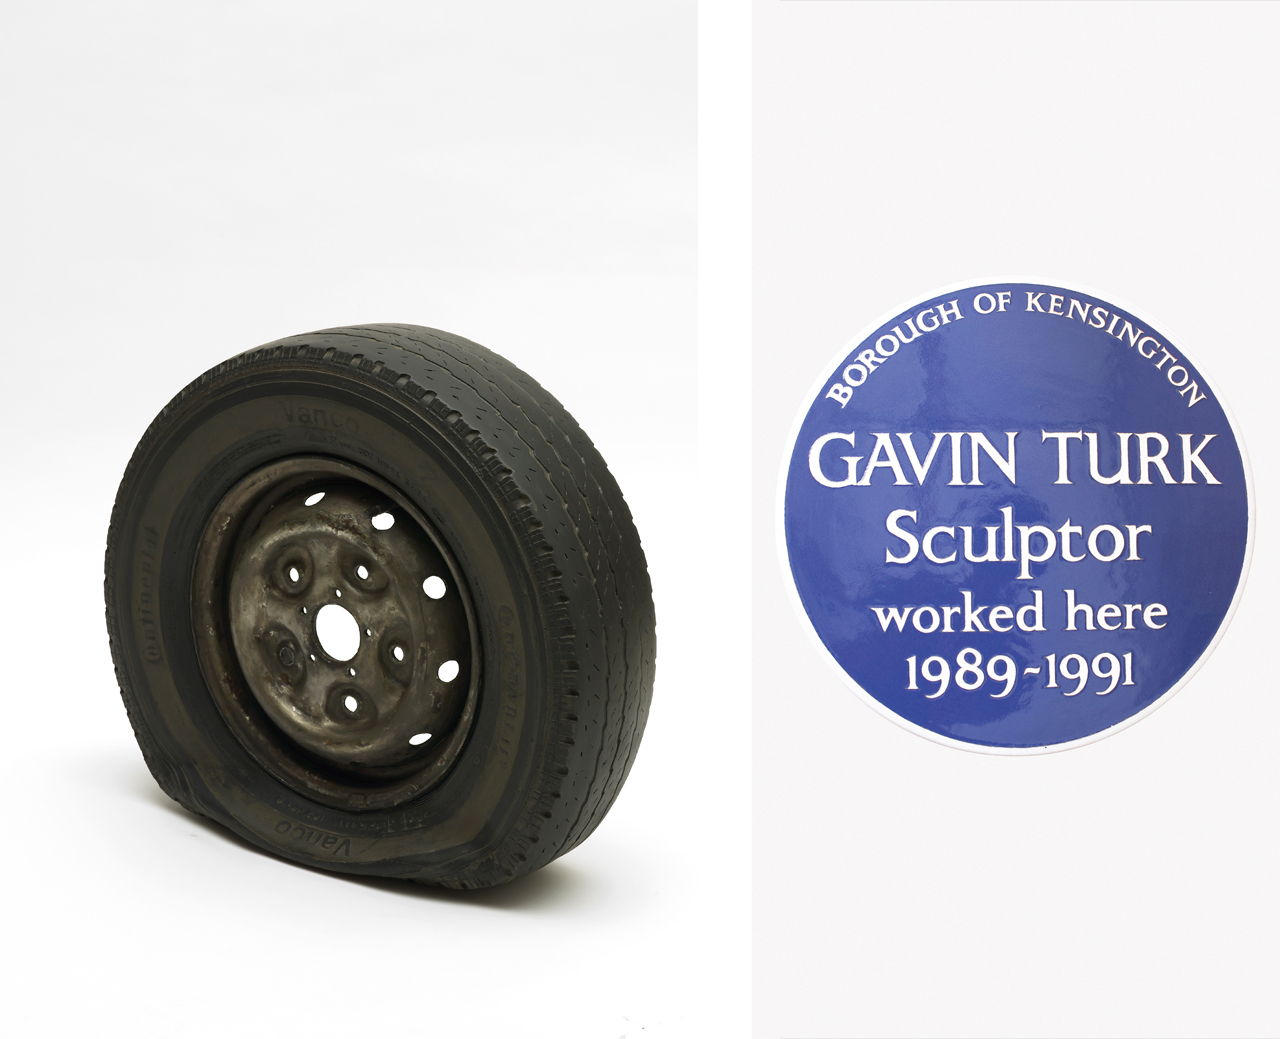 On the left Gavin Turk, Flat Tyre, 2013 and on the right Gavin Turk, Cave, 1991